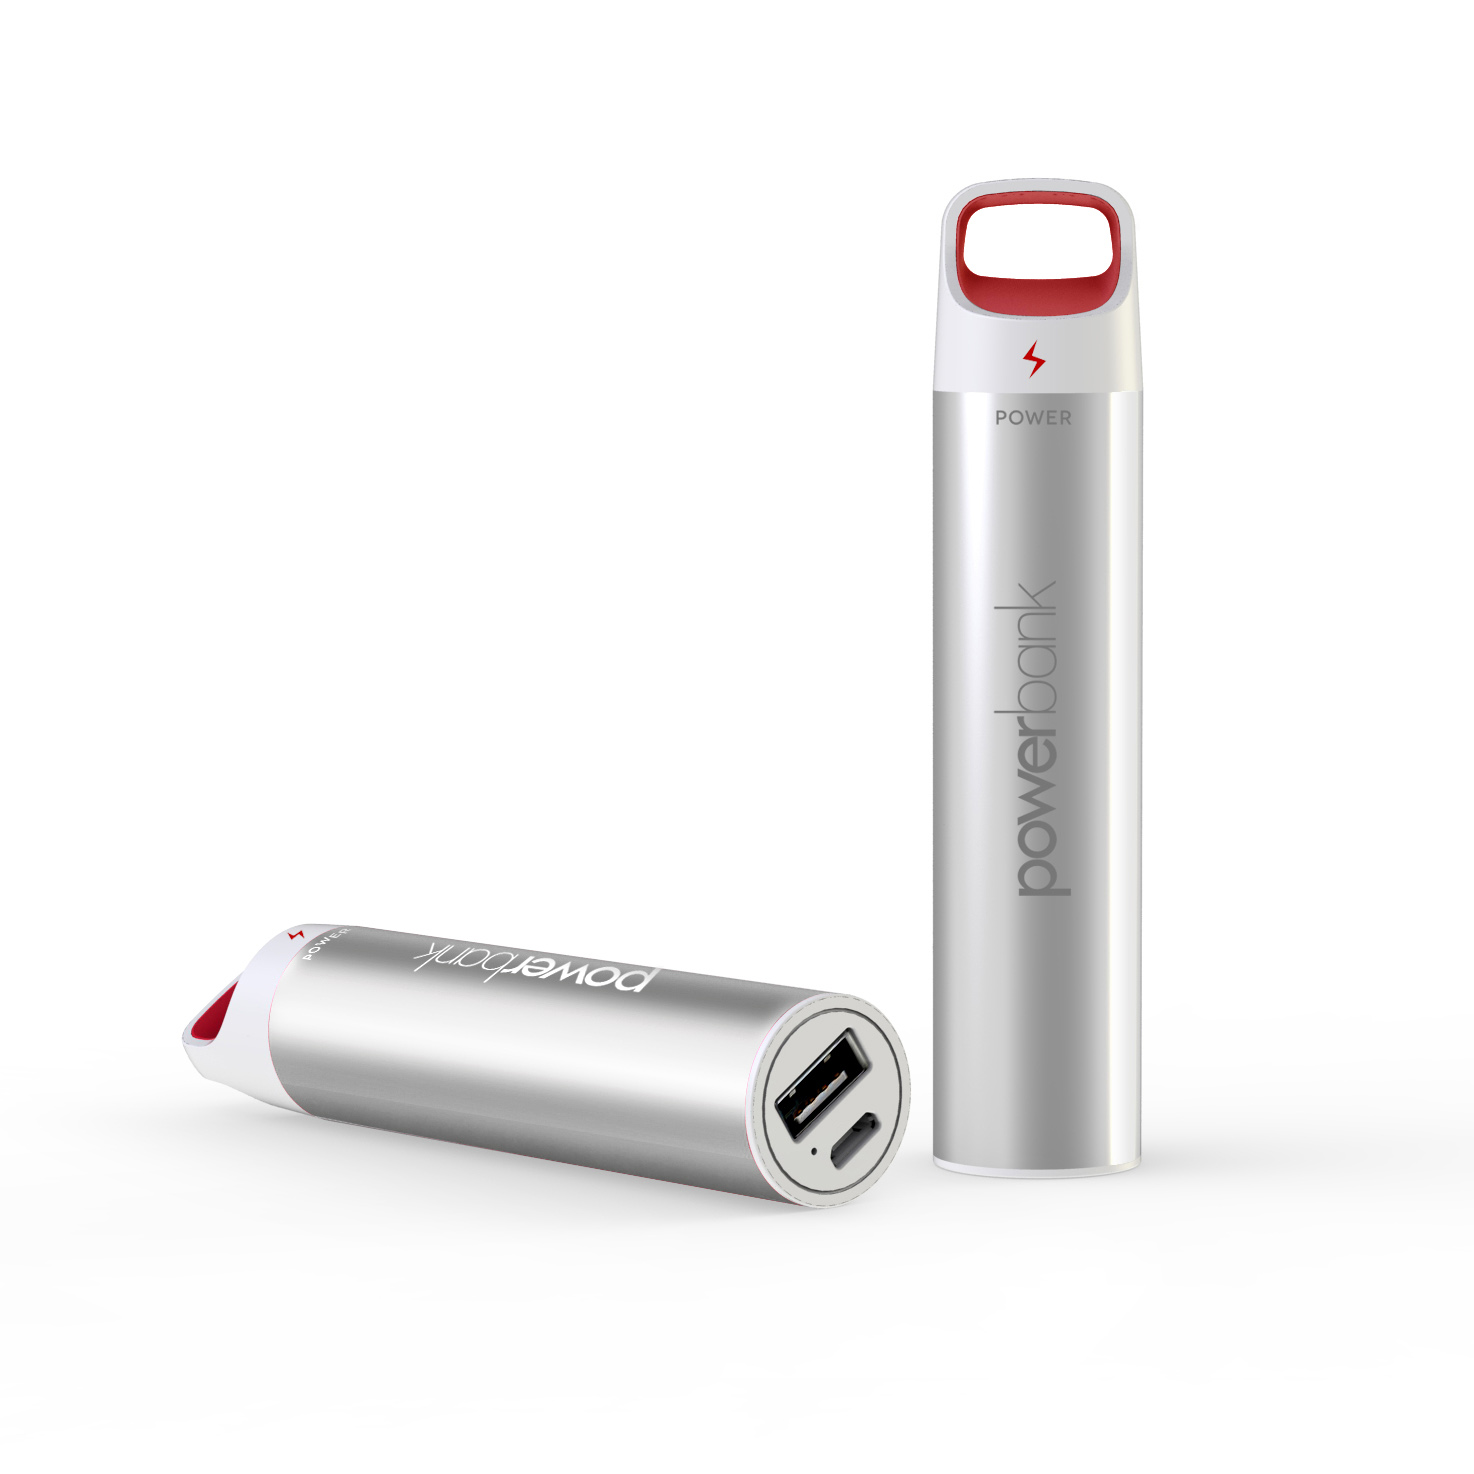 Maverick power bank with anodised aluminium housing, 2200mAH capacity, LD battery level indicator.